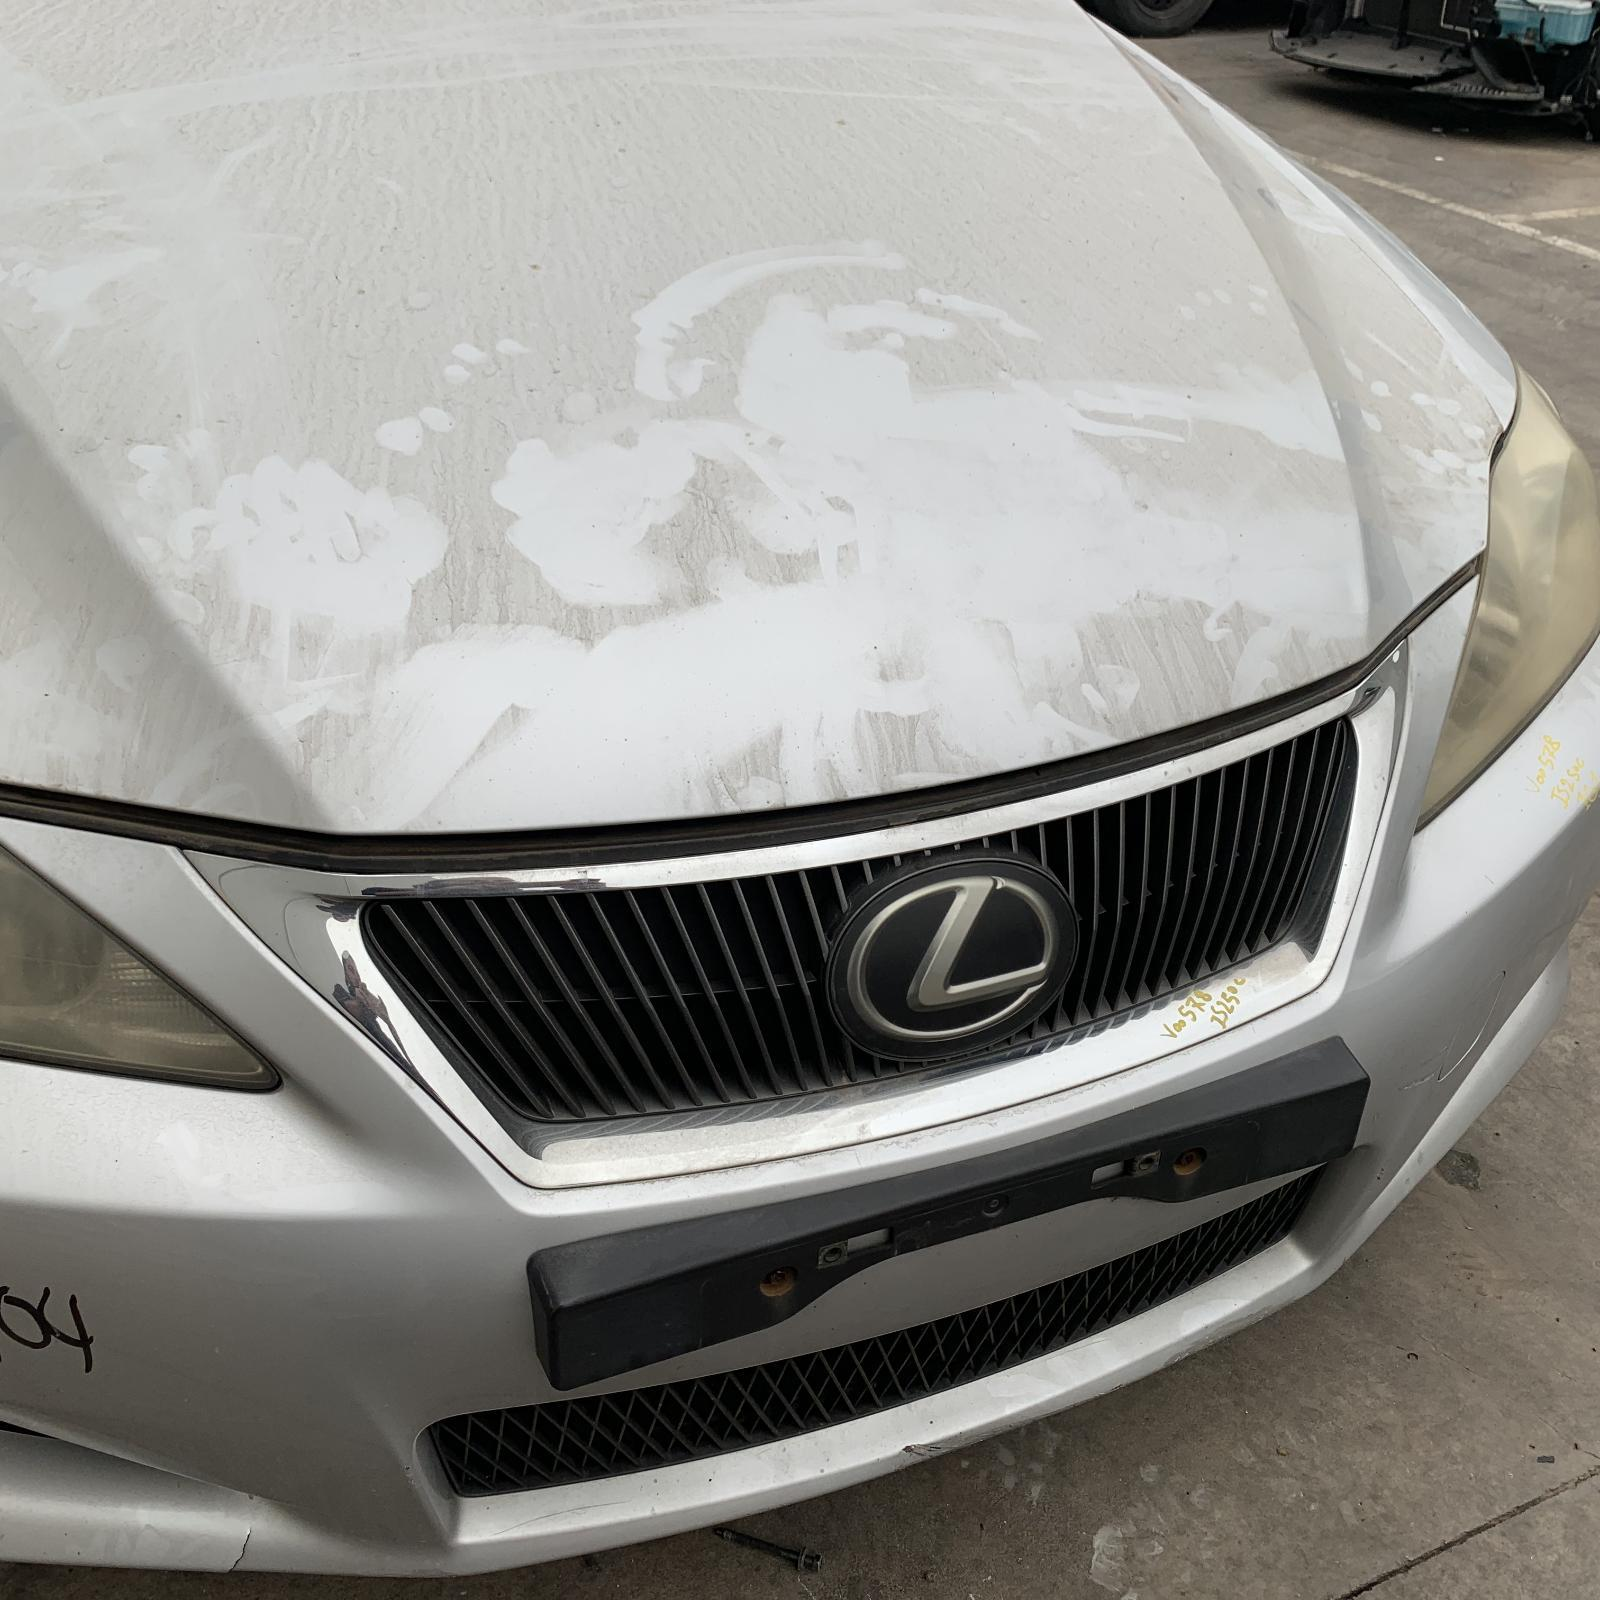 LEXUS IS250/IS250C, Grille, IS250C, RADIATOR GRILLE, GSE20R, W/ PRE-CRASH SYSTEM TYPE, 07/09-12/14